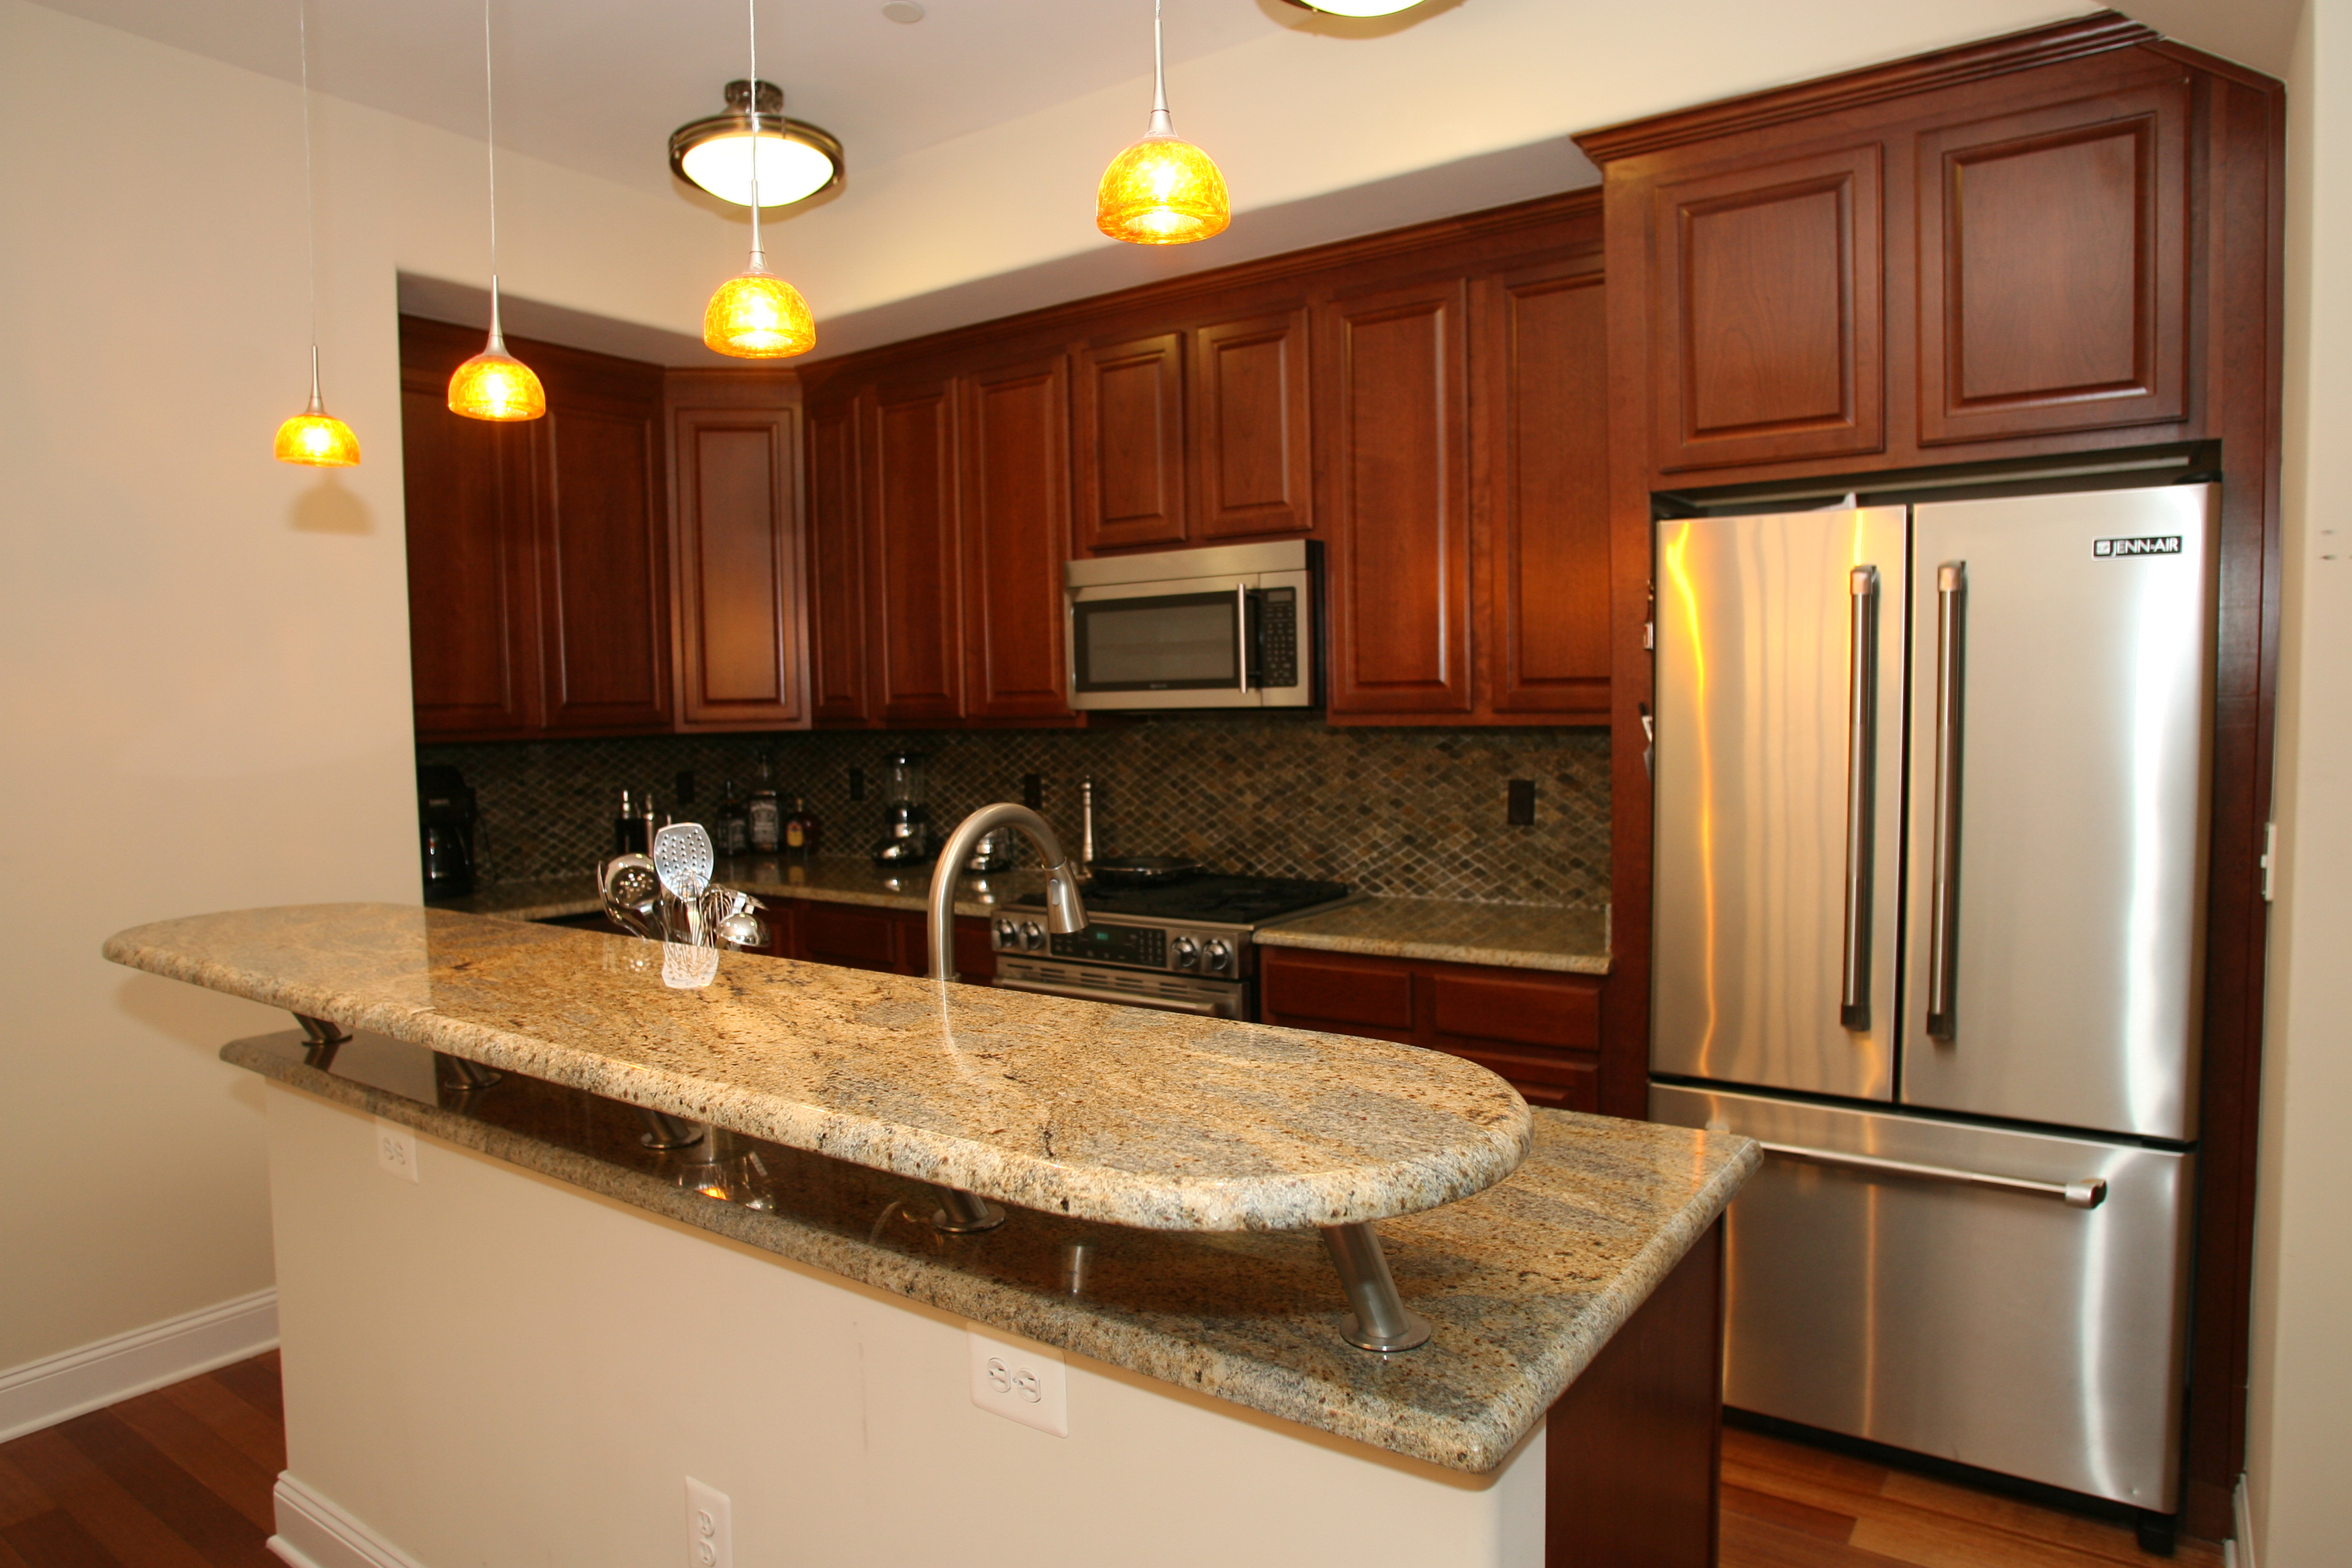 Signature kitchens additions baths rockville md 20850 for 0 kitchens and bathrooms